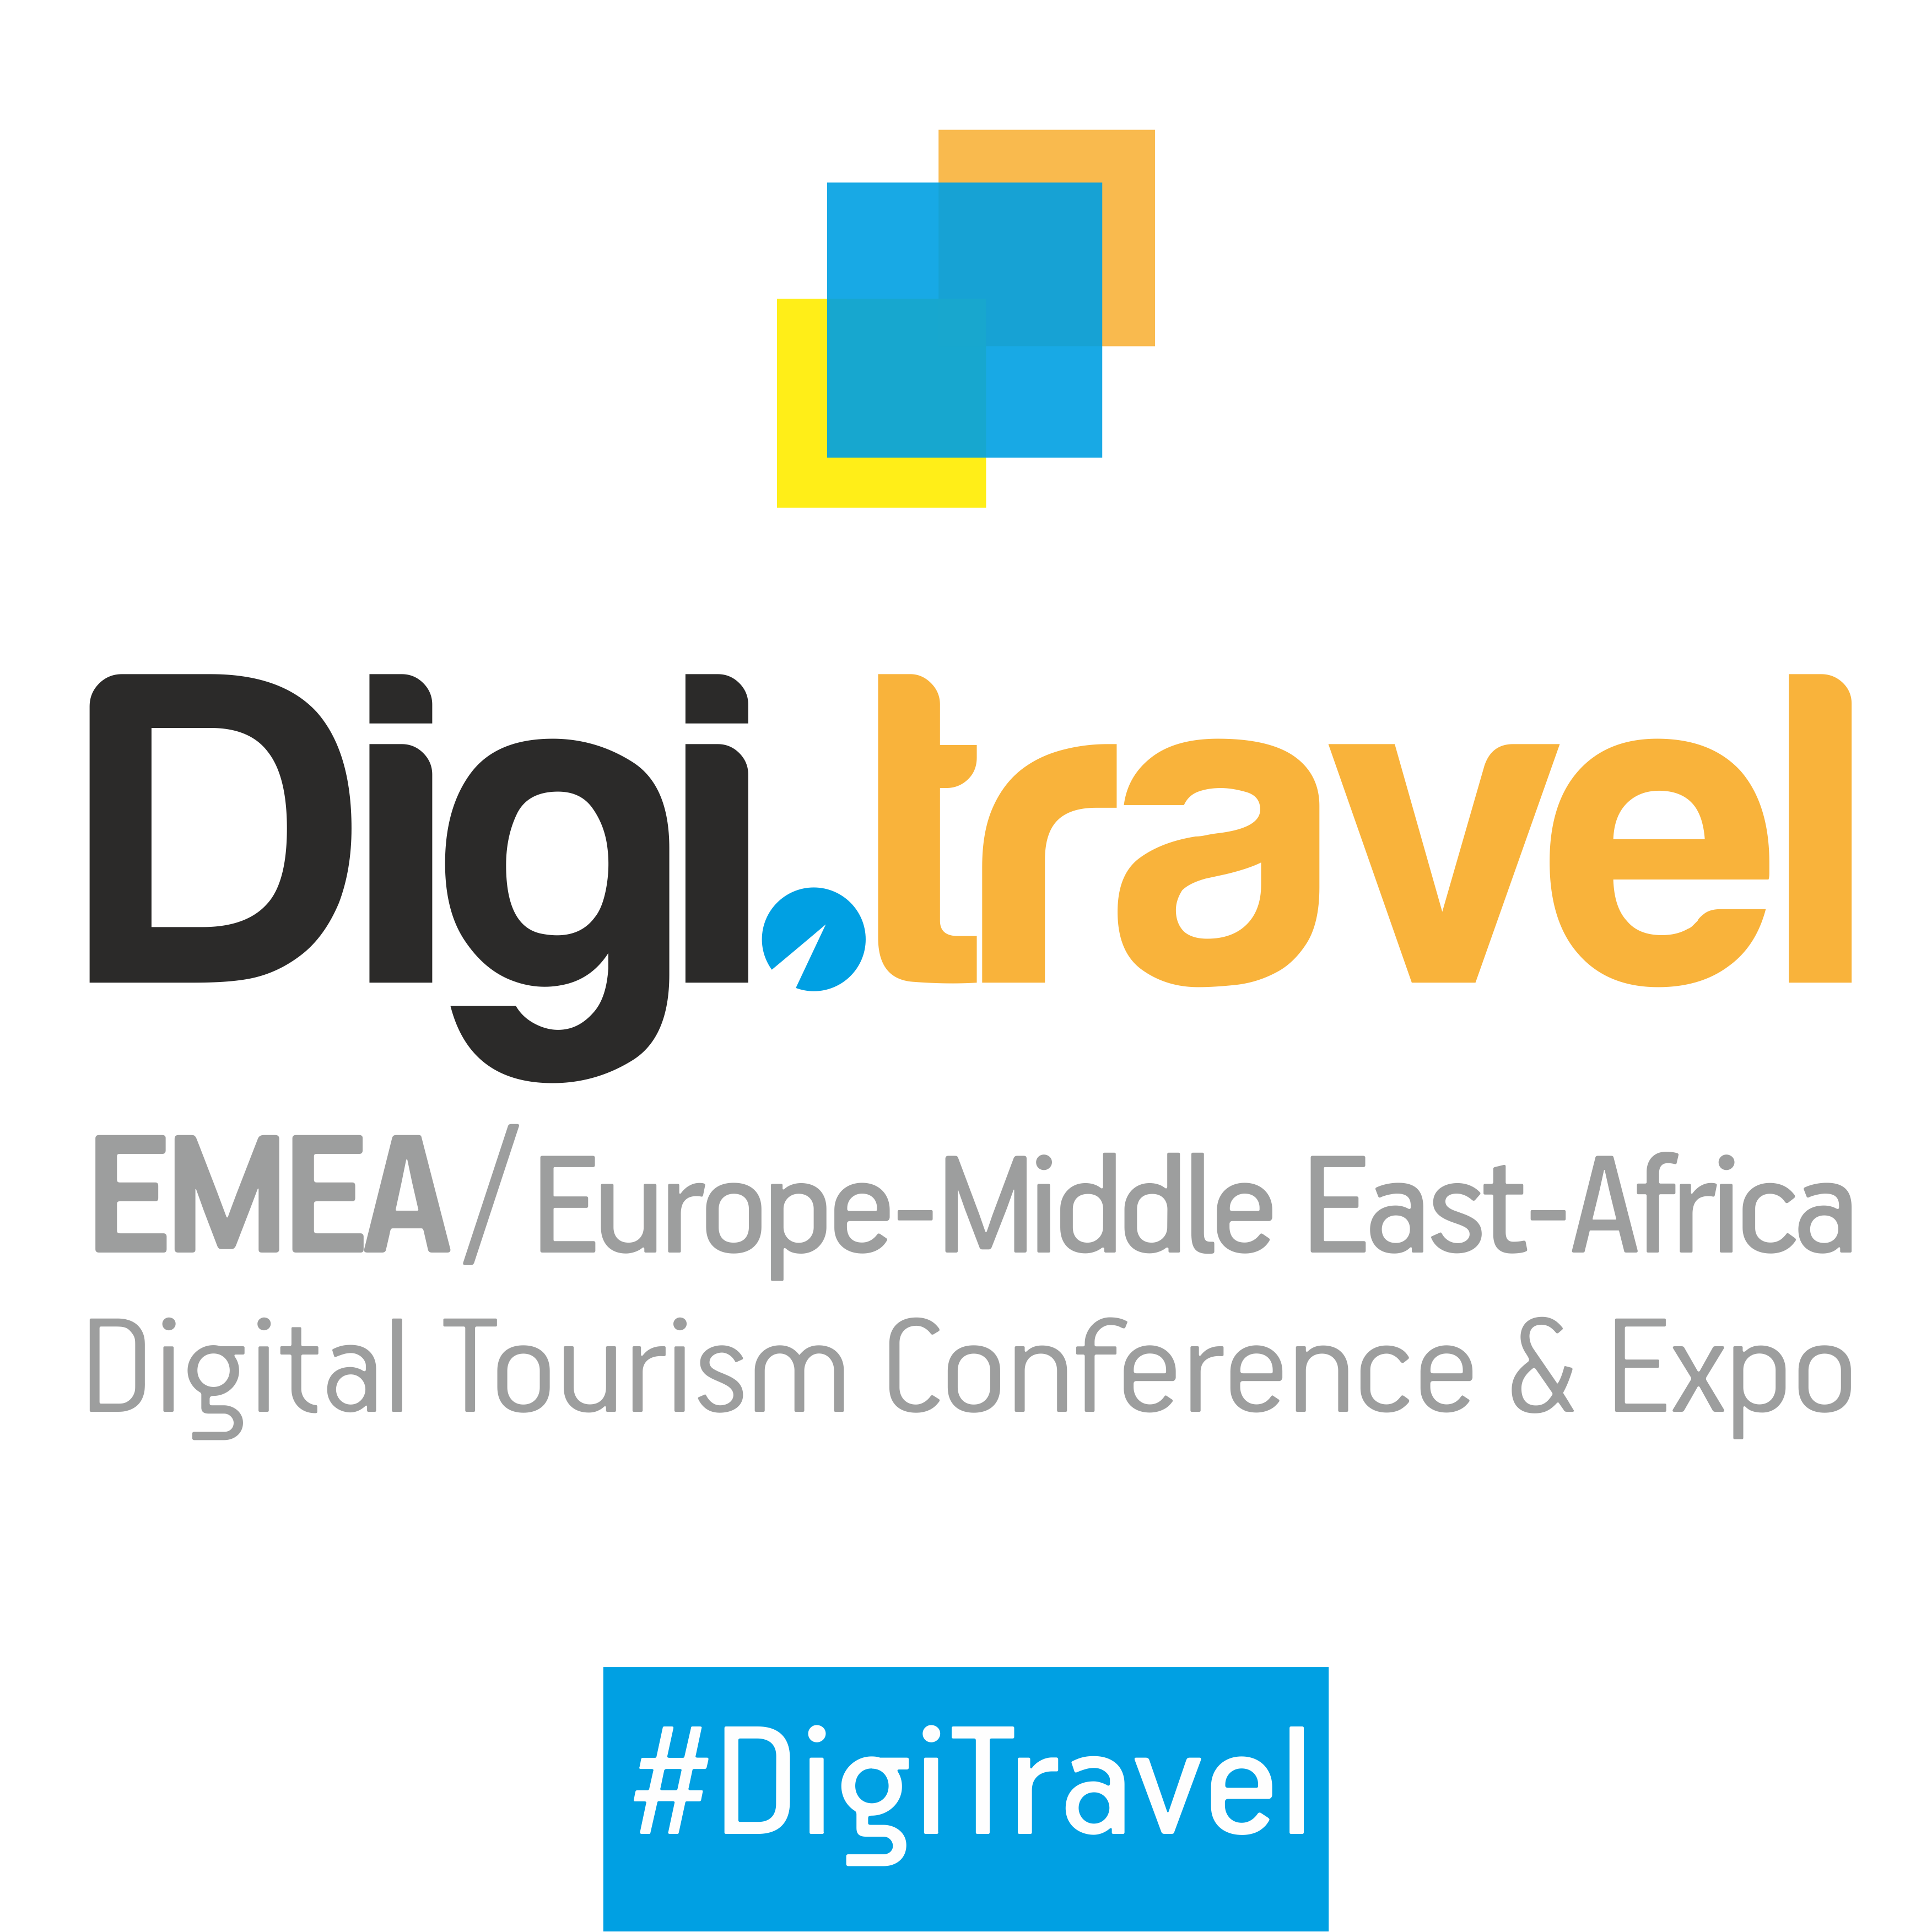 Logo Digi Travel EMEA